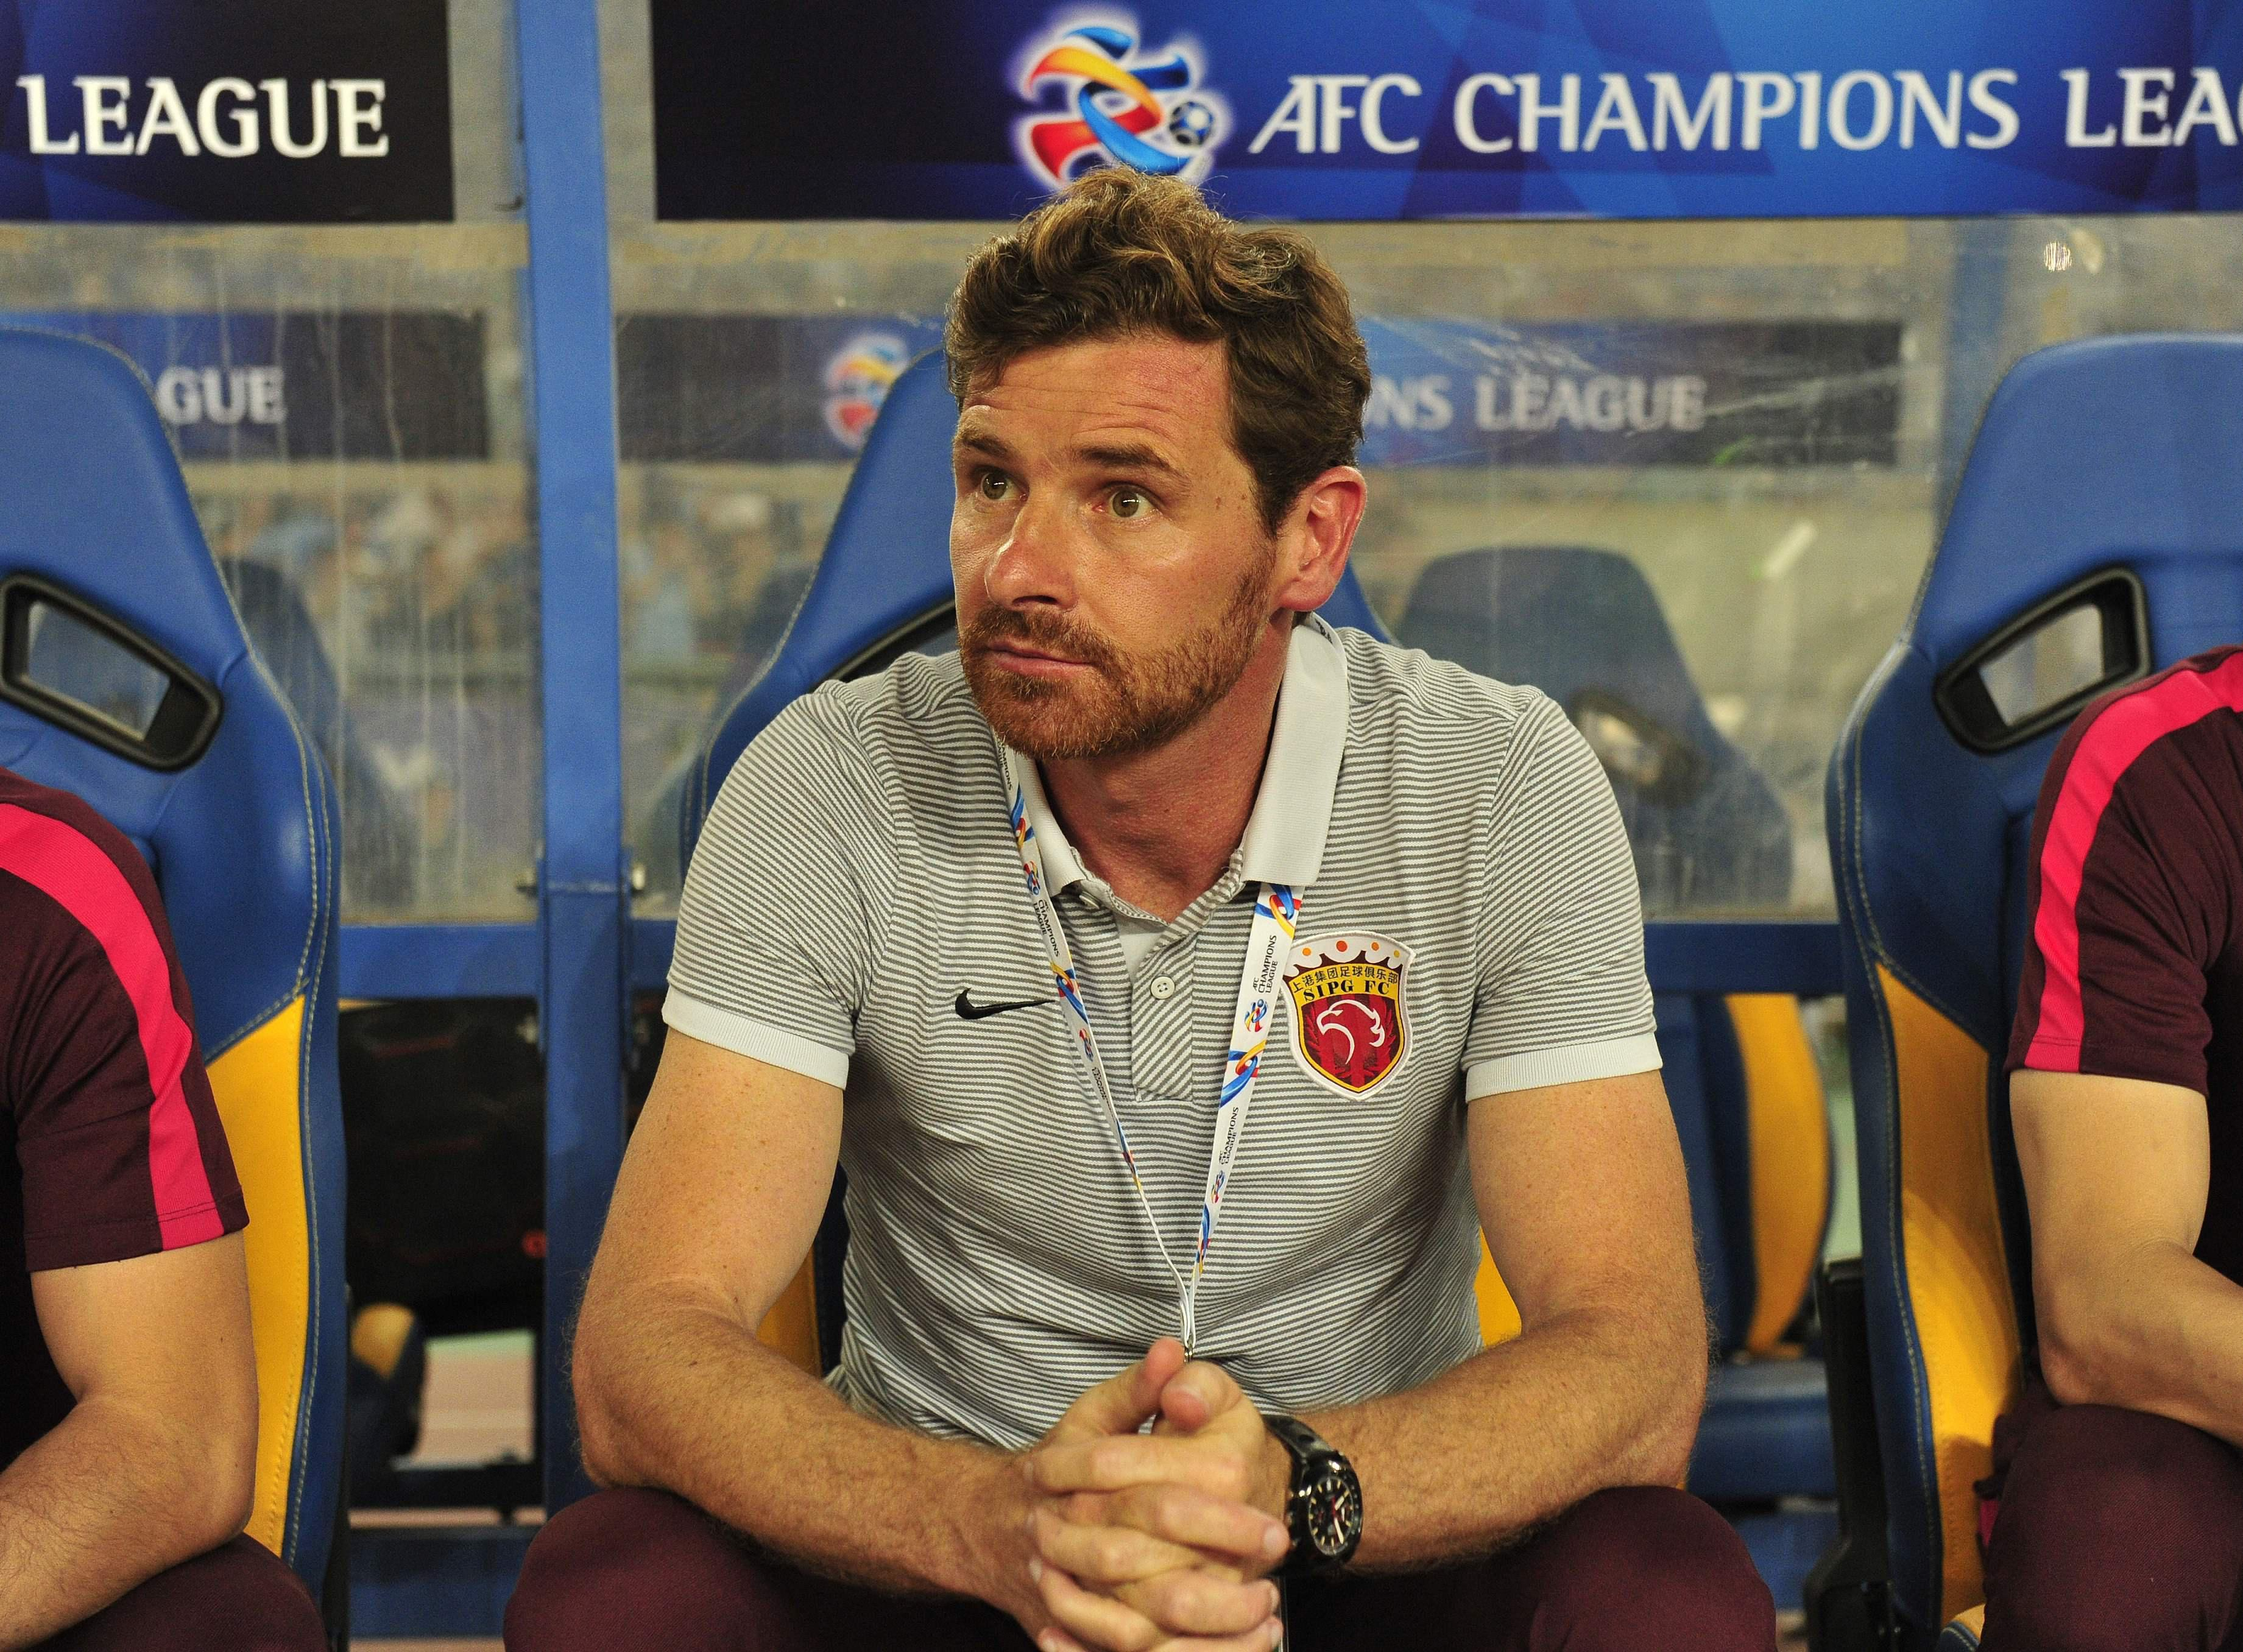 Andre Villas Boas accused a referee of taking a bribe